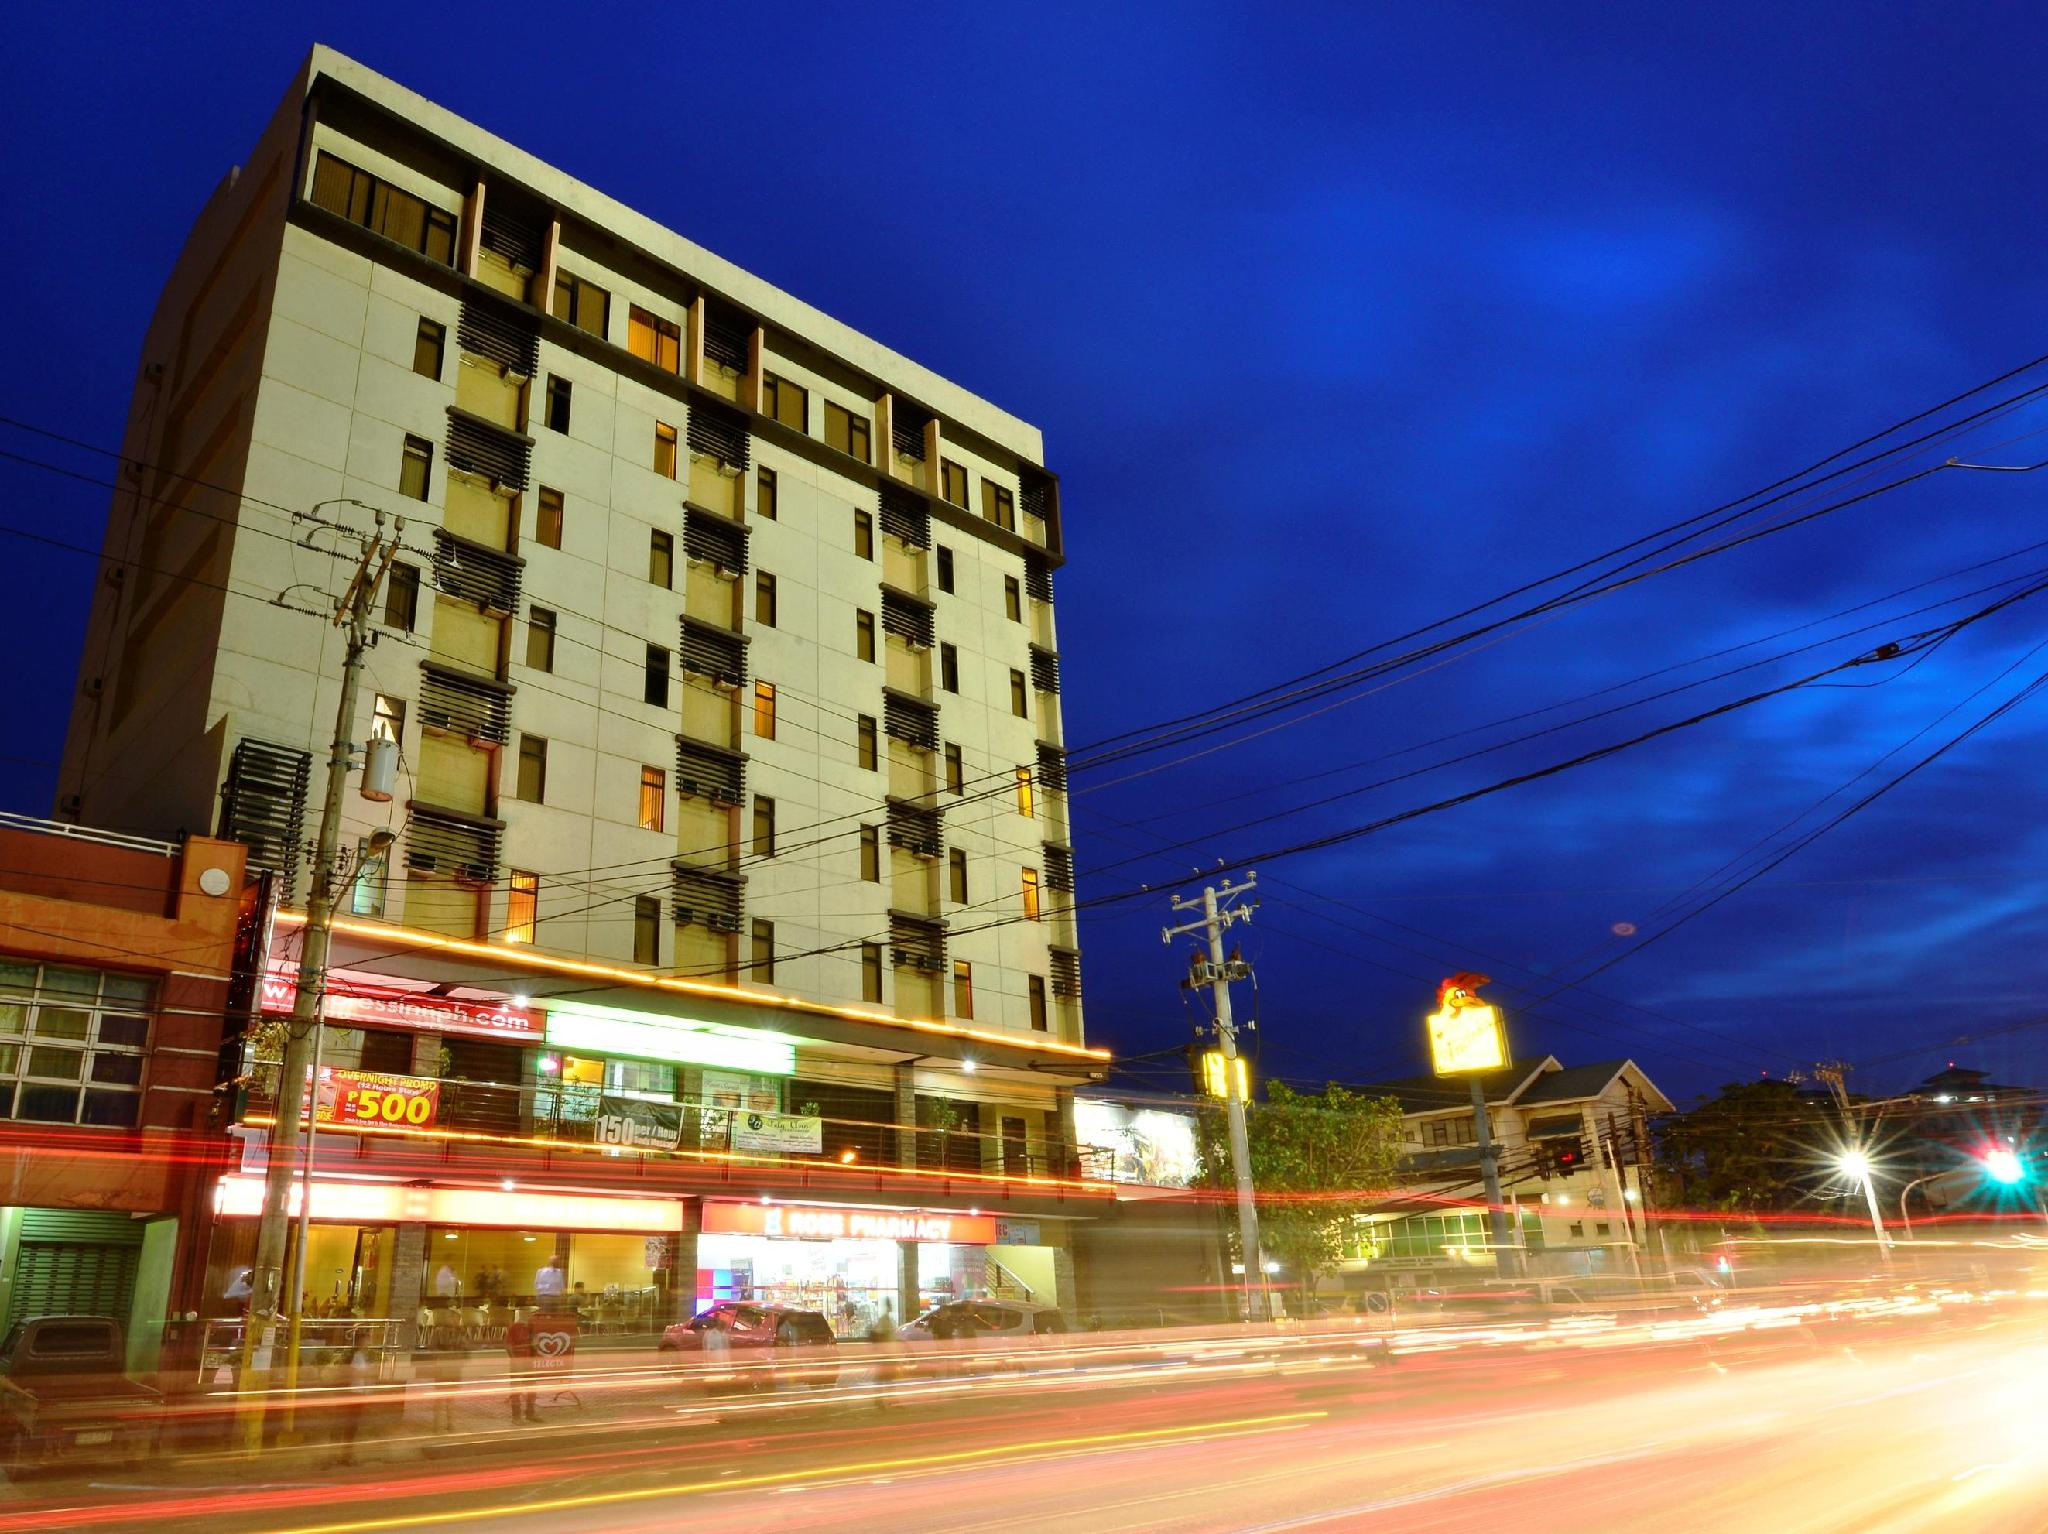 Express Inn - Cebu Cebu